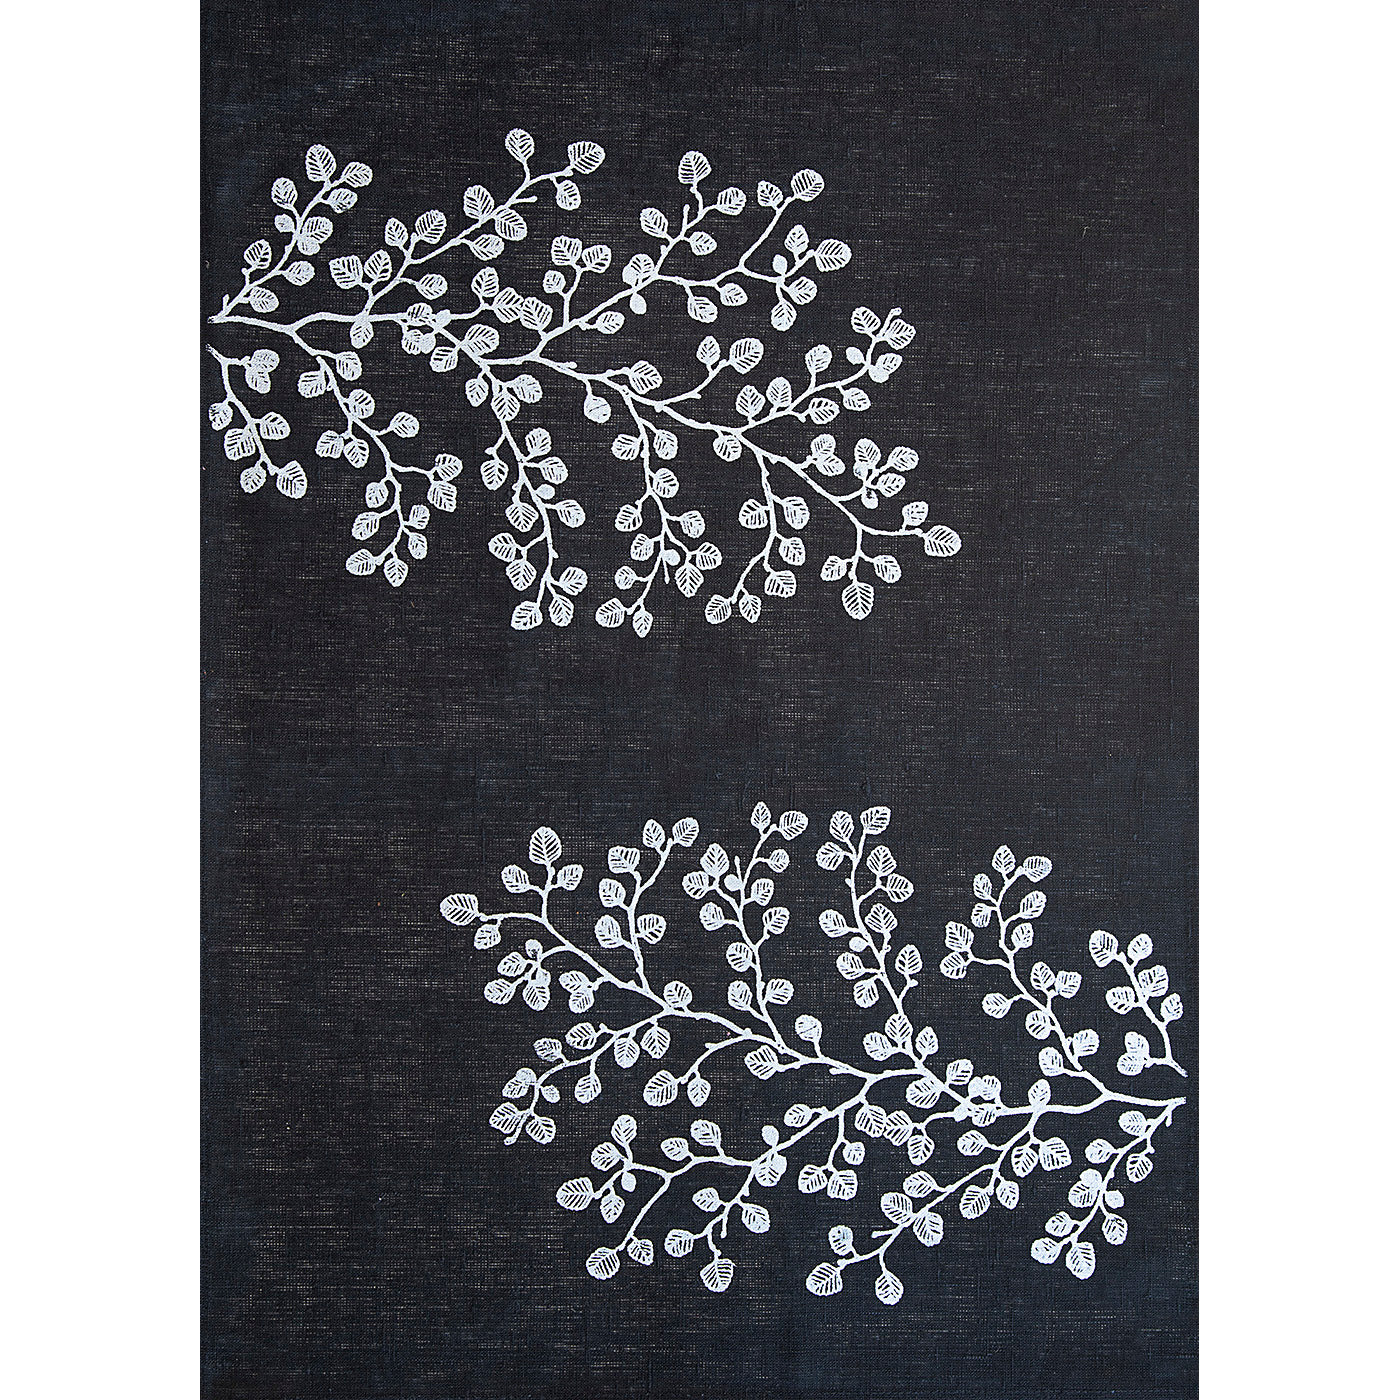 Stalley Textile Co. - Tea Towel - Fagus - Silver on Black